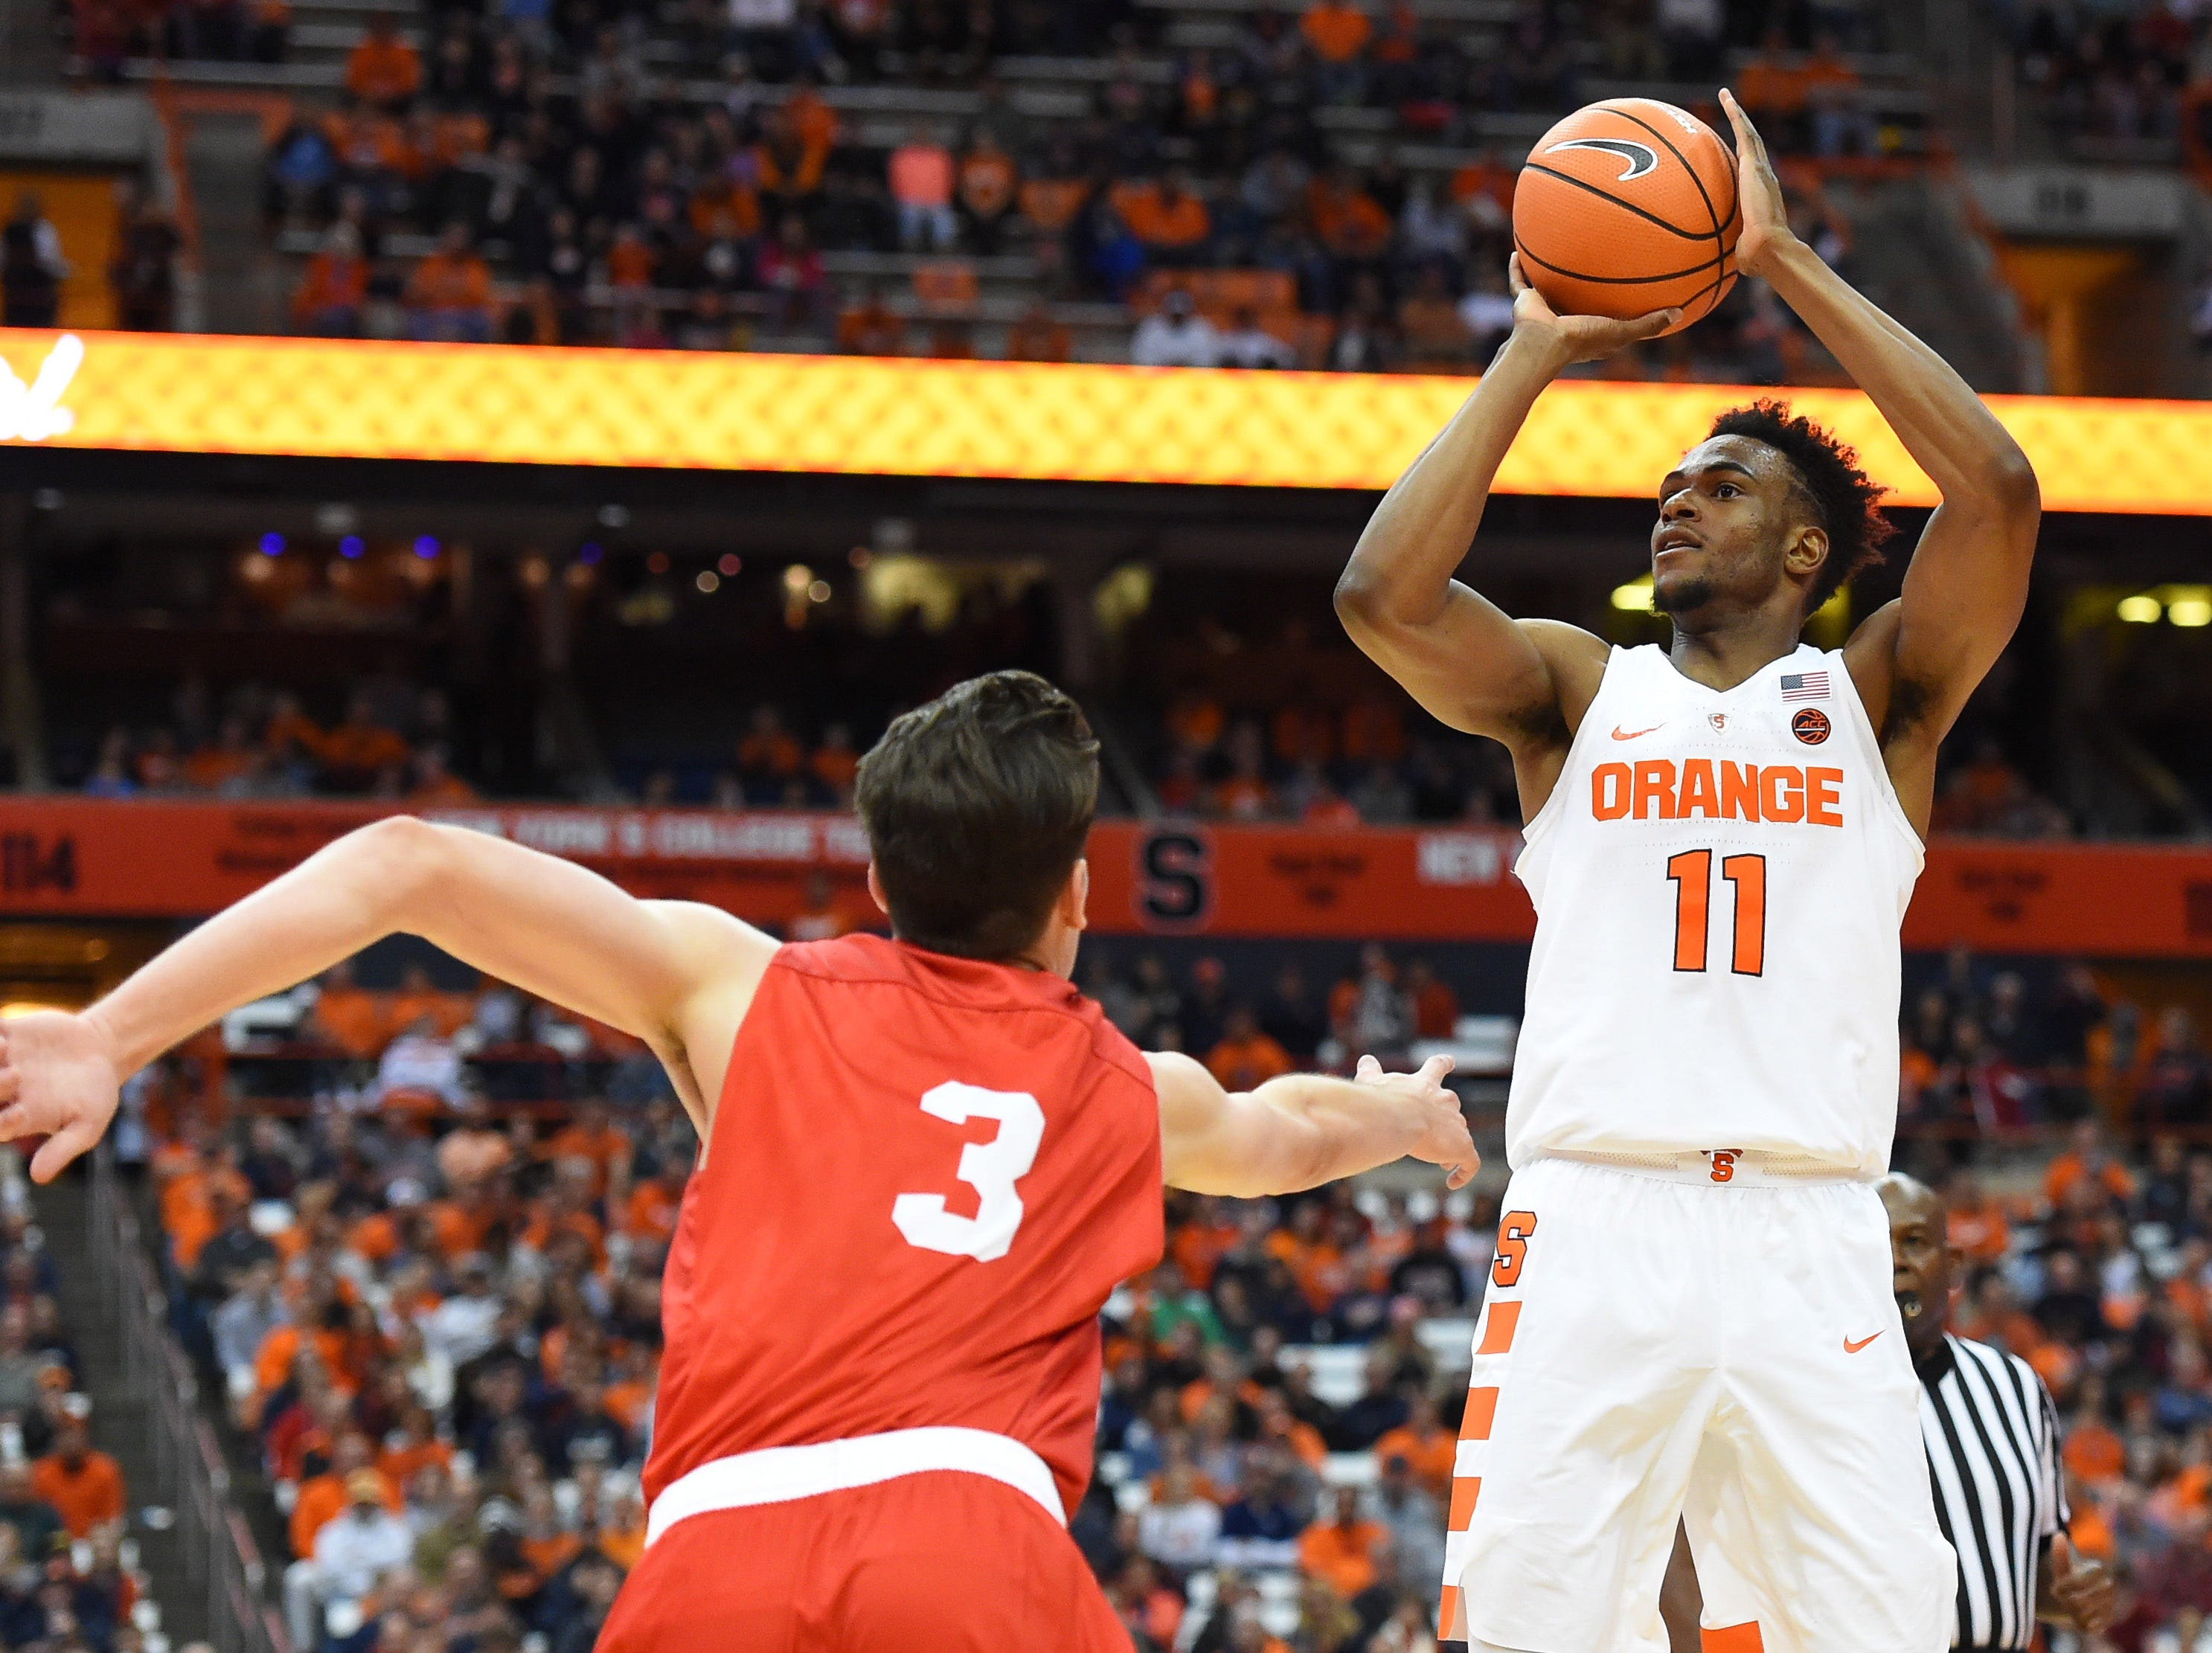 Nov 10, 2017; Syracuse, NY, USA; Syracuse Orange forward Oshae Brissett (11) shoots the ball as Cornell Big Red forward Jimmy Boeheim (3) defends during the second half at the Carrier Dome. Mandatory Credit: Rich Barnes-USA TODAY Sports